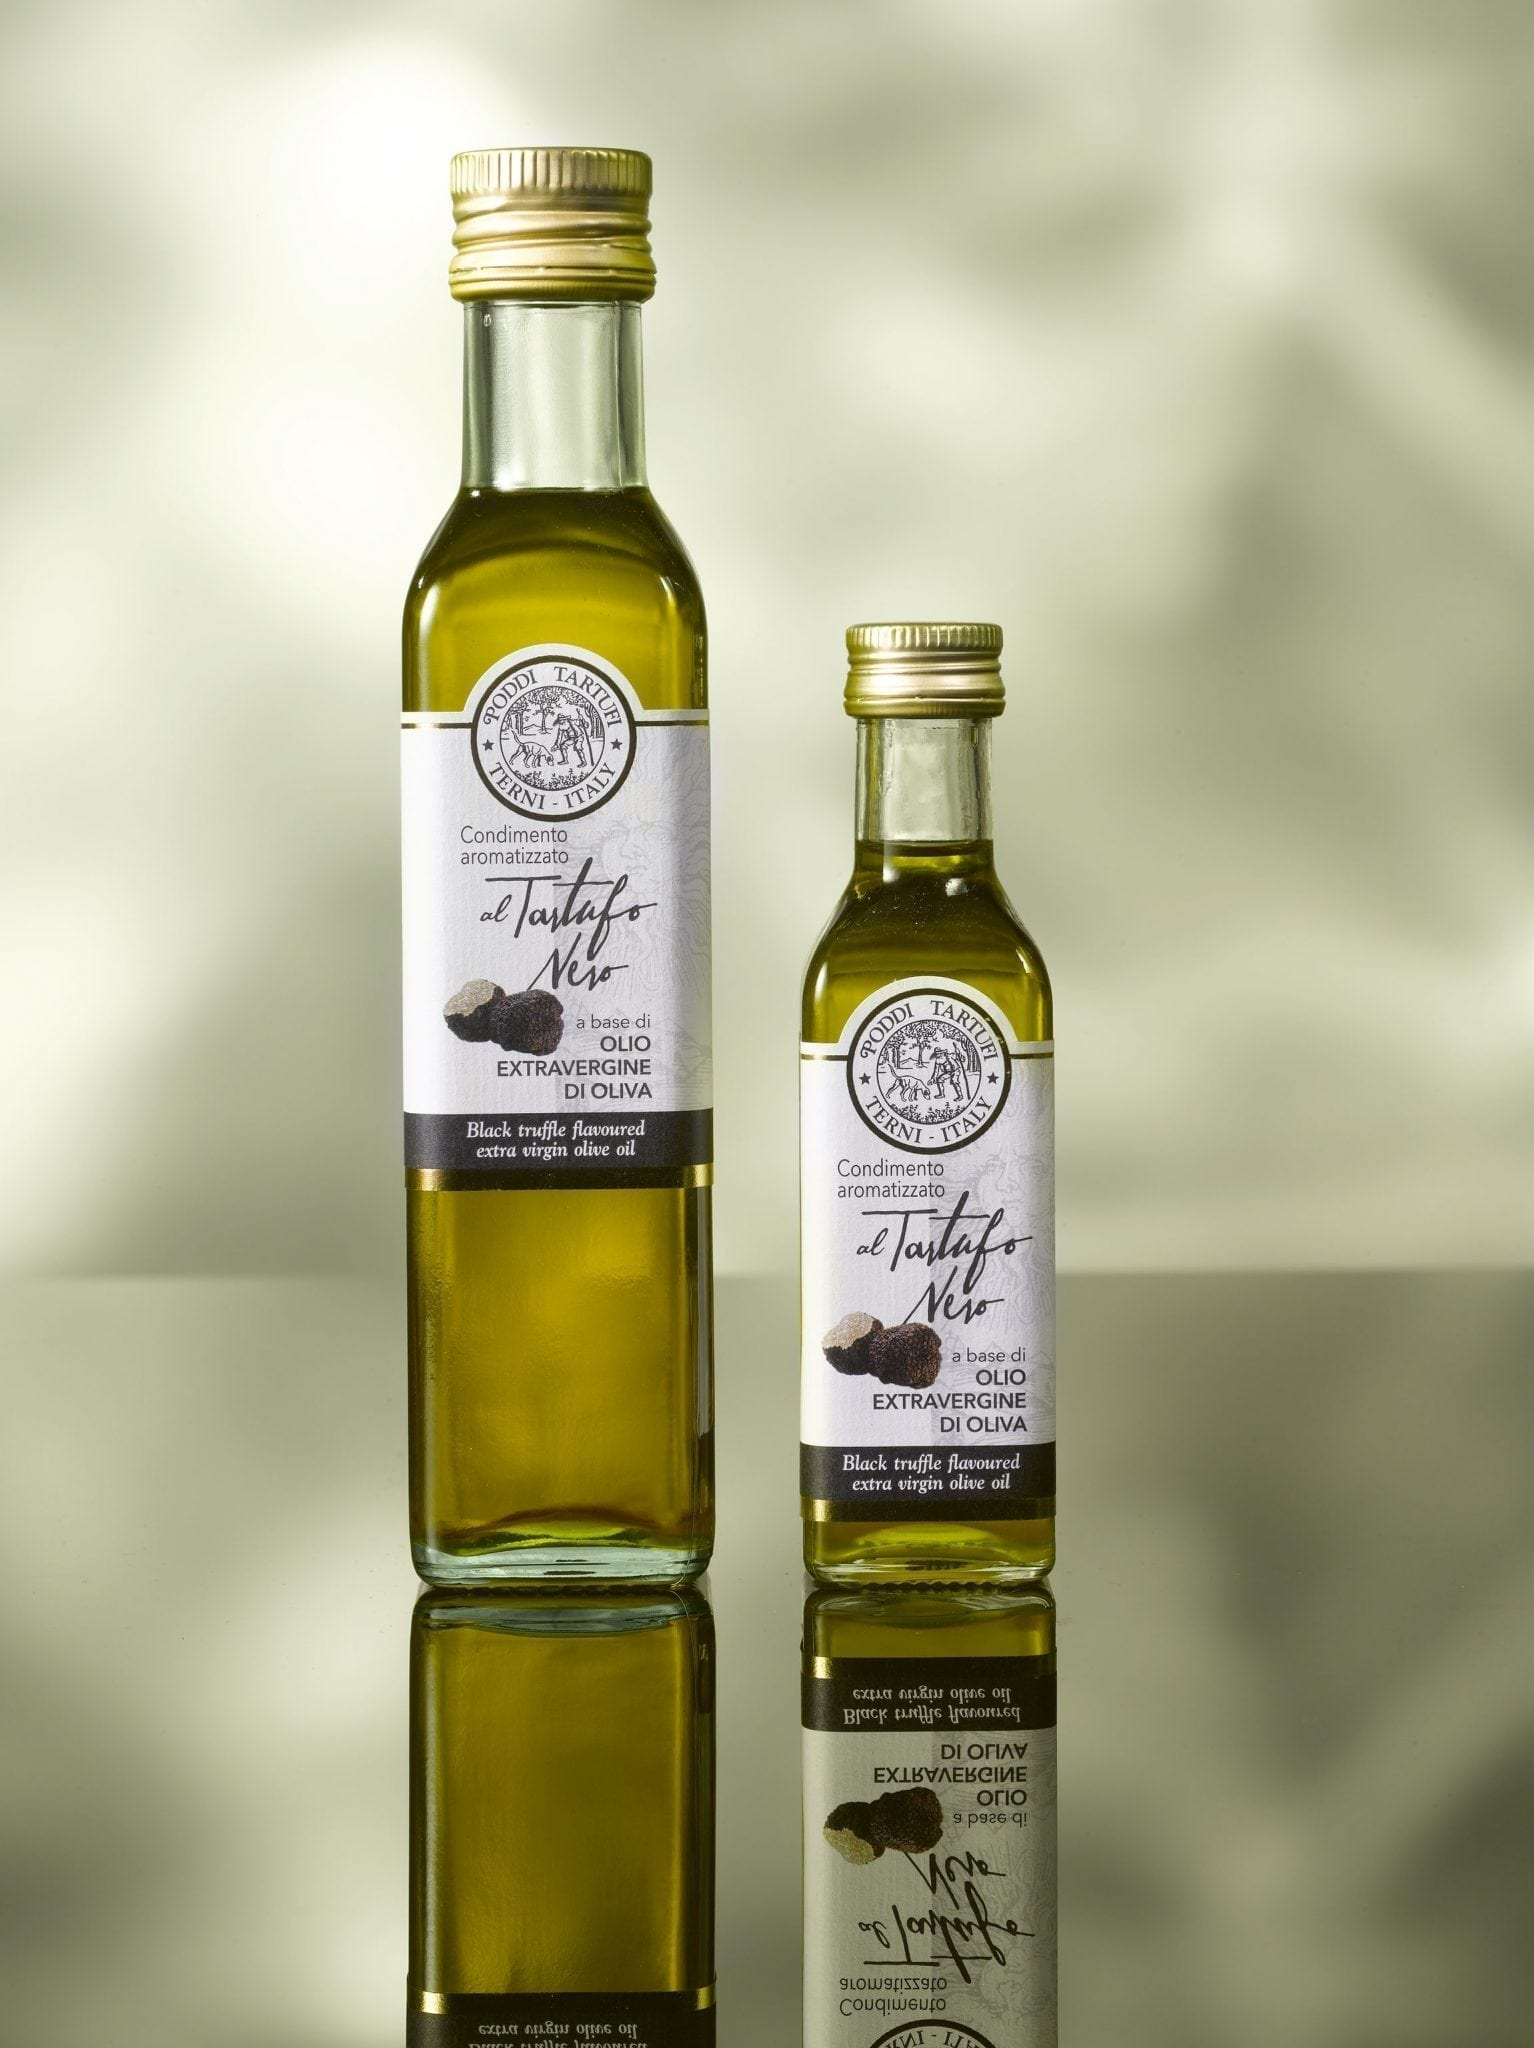 Black truffle olive oil, Poddi Umbrie, 100ml